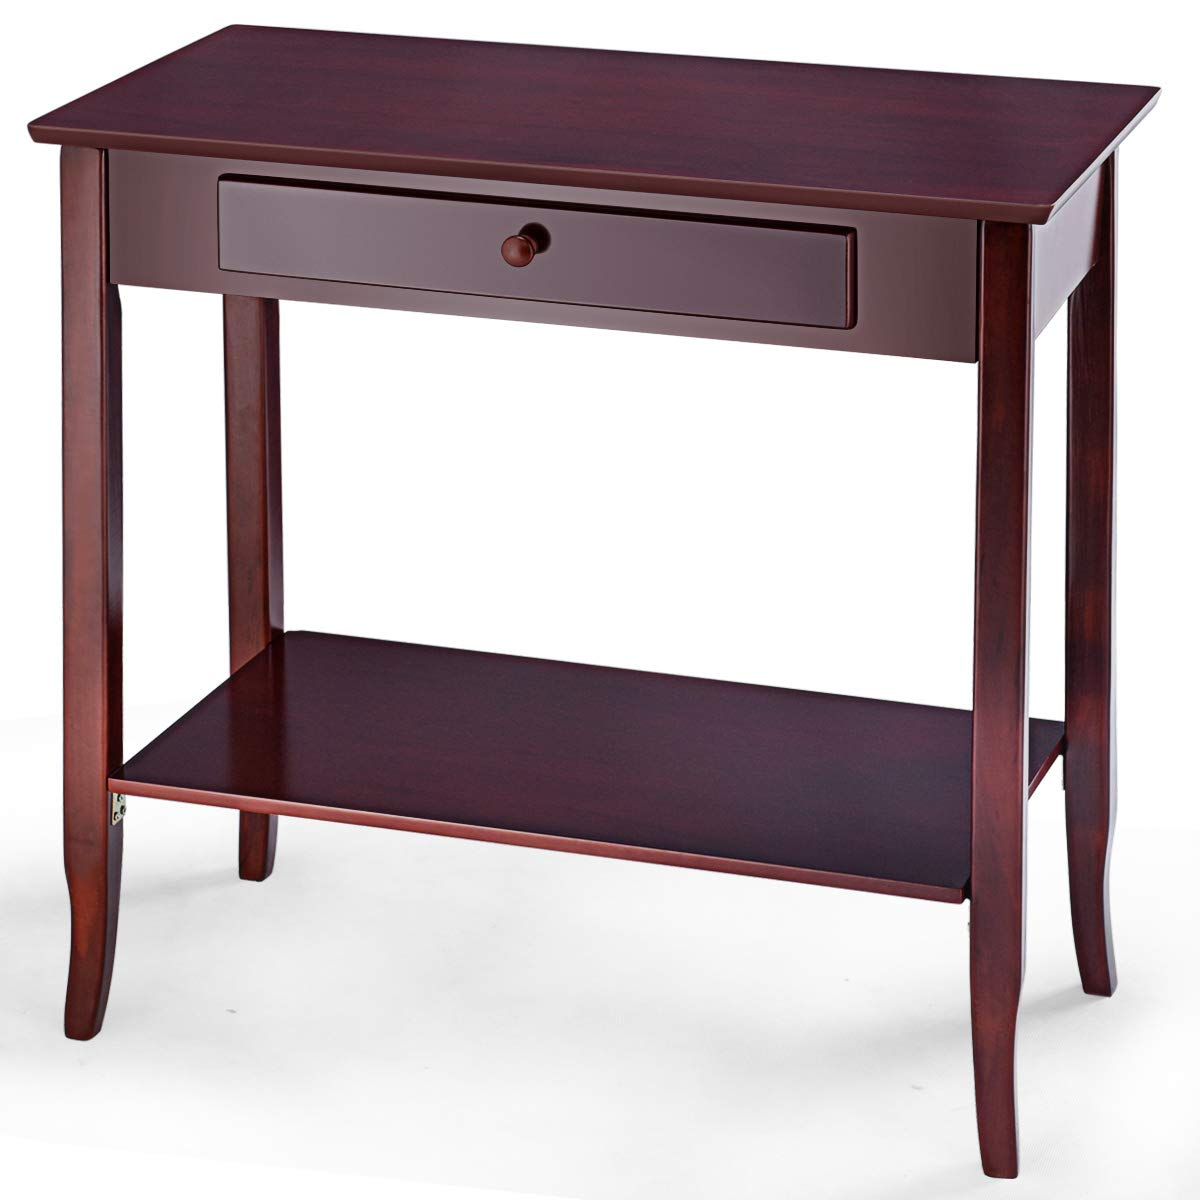 Giantex Entryway Table W/Storage Shelf and Drawer for Living Room Bedroom Console Hallway Desk by Giantex